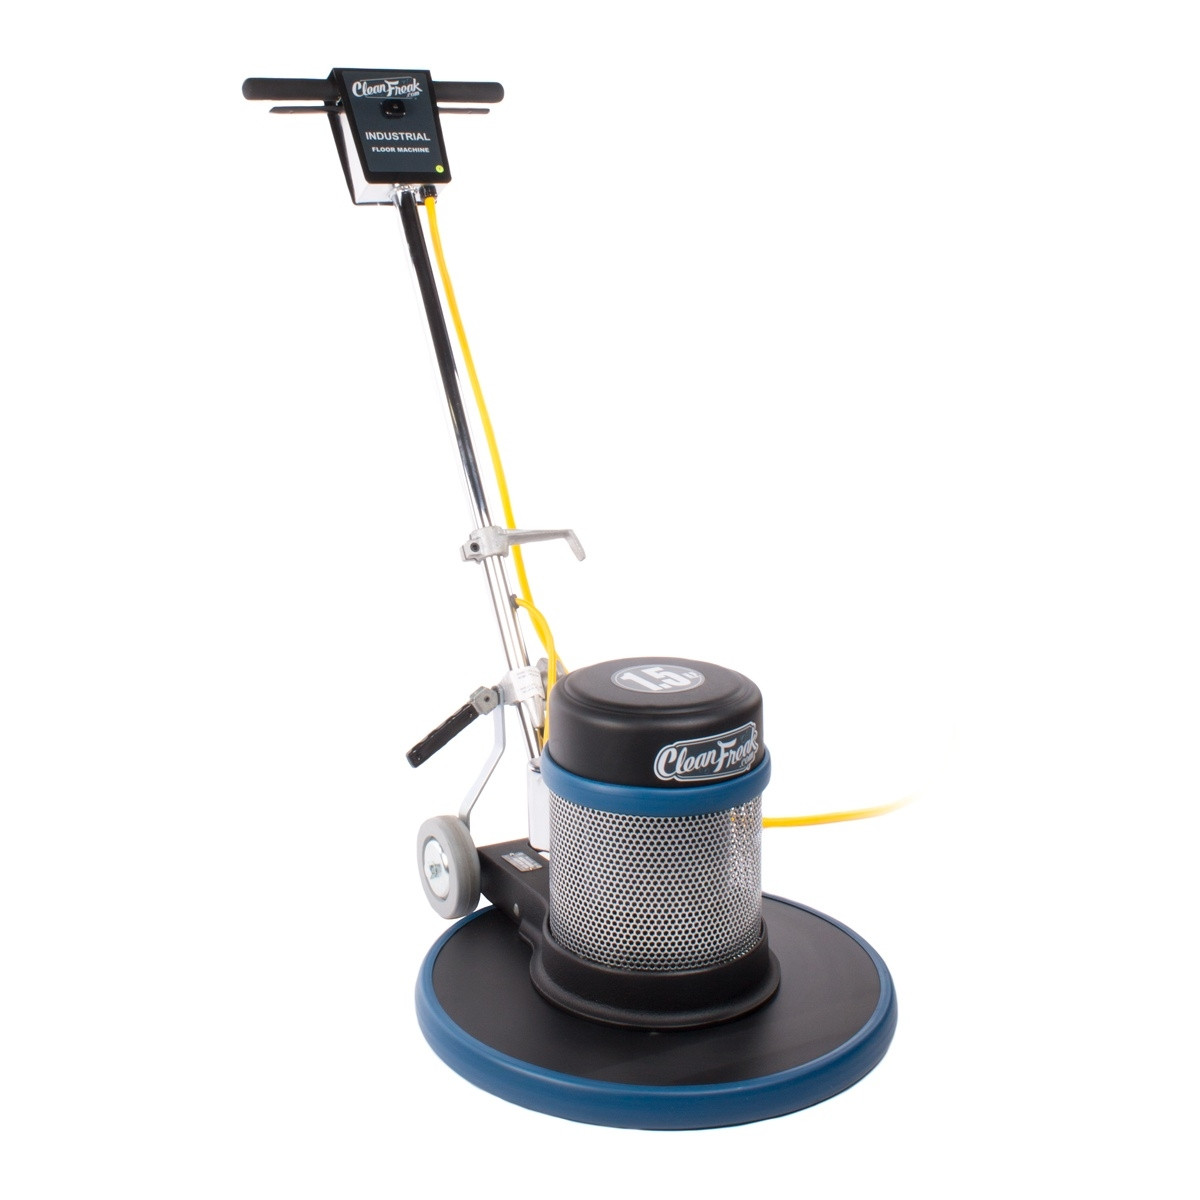 Cleanfreak 174 20 Inch Rotary Floor Buffer